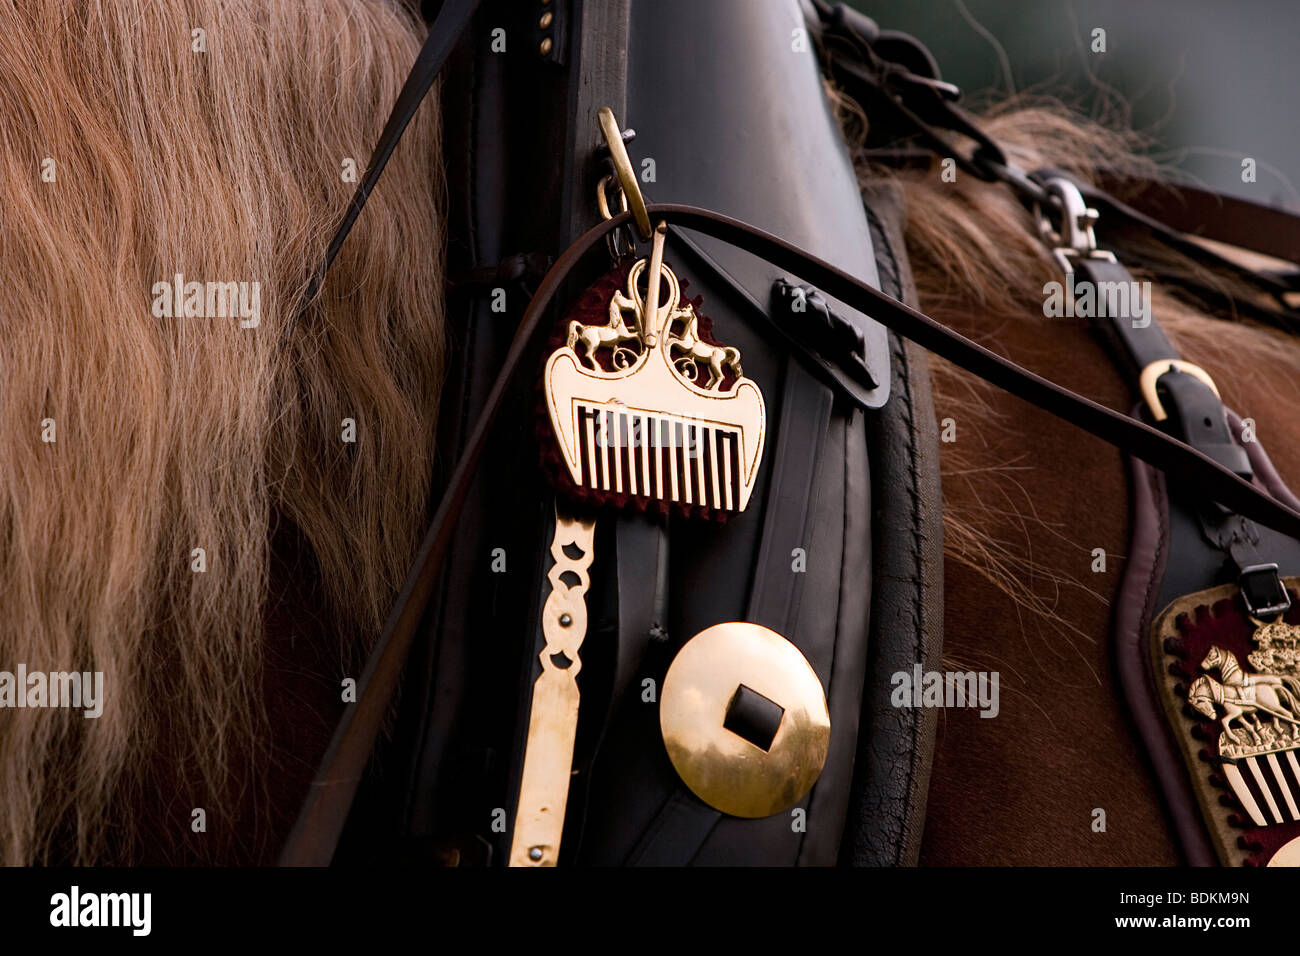 Süddeutsches Kaltblut, South German draught horse with leather harness, Rosstag, Bartholomä, South Germany - Stock Image